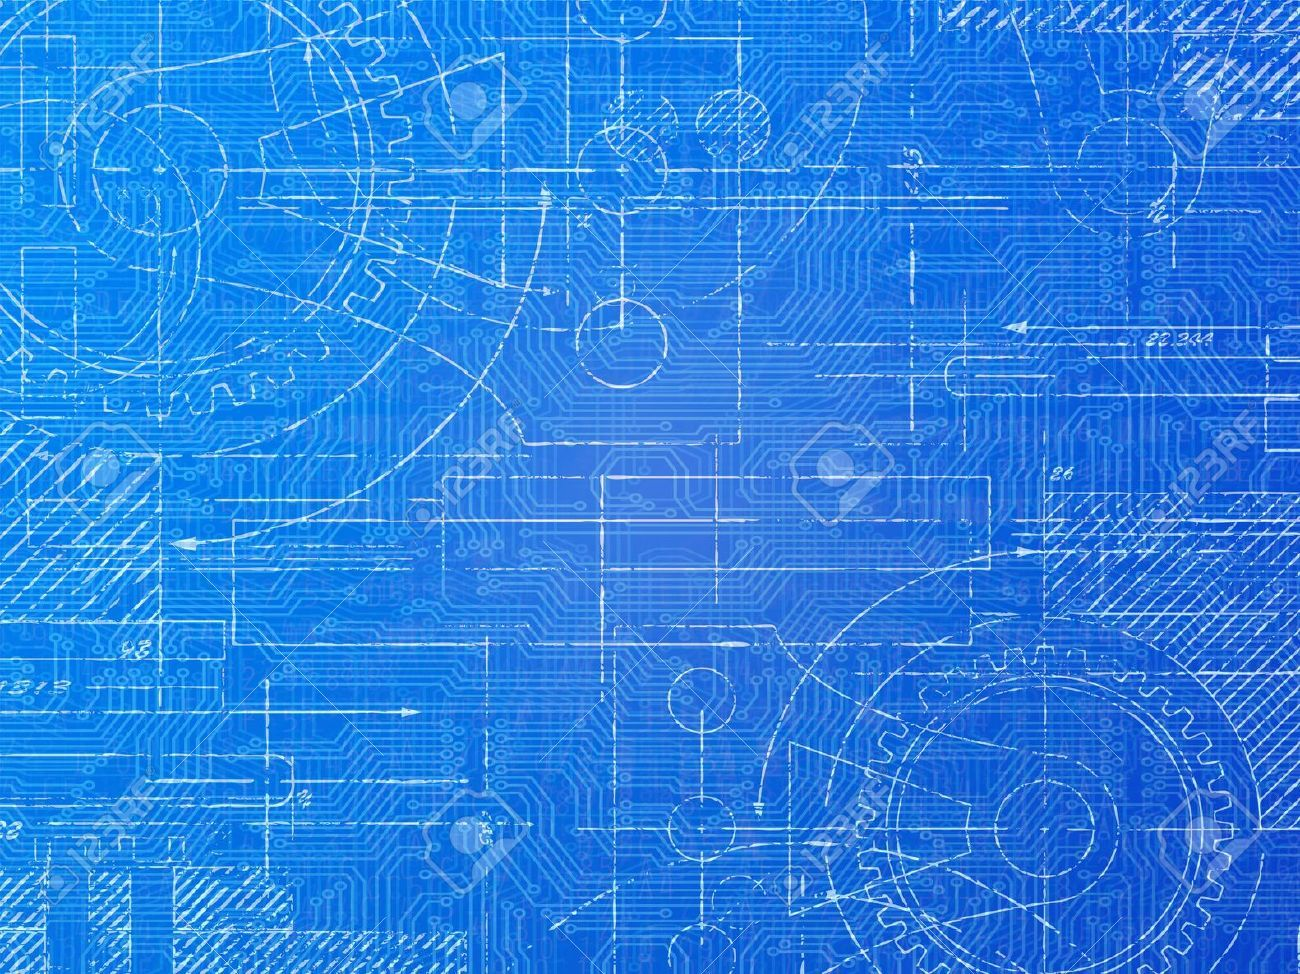 19421238 technical blueprint electronics and mechanical background 19421238 technical blueprint electronics and mechanical background illustration malvernweather Gallery